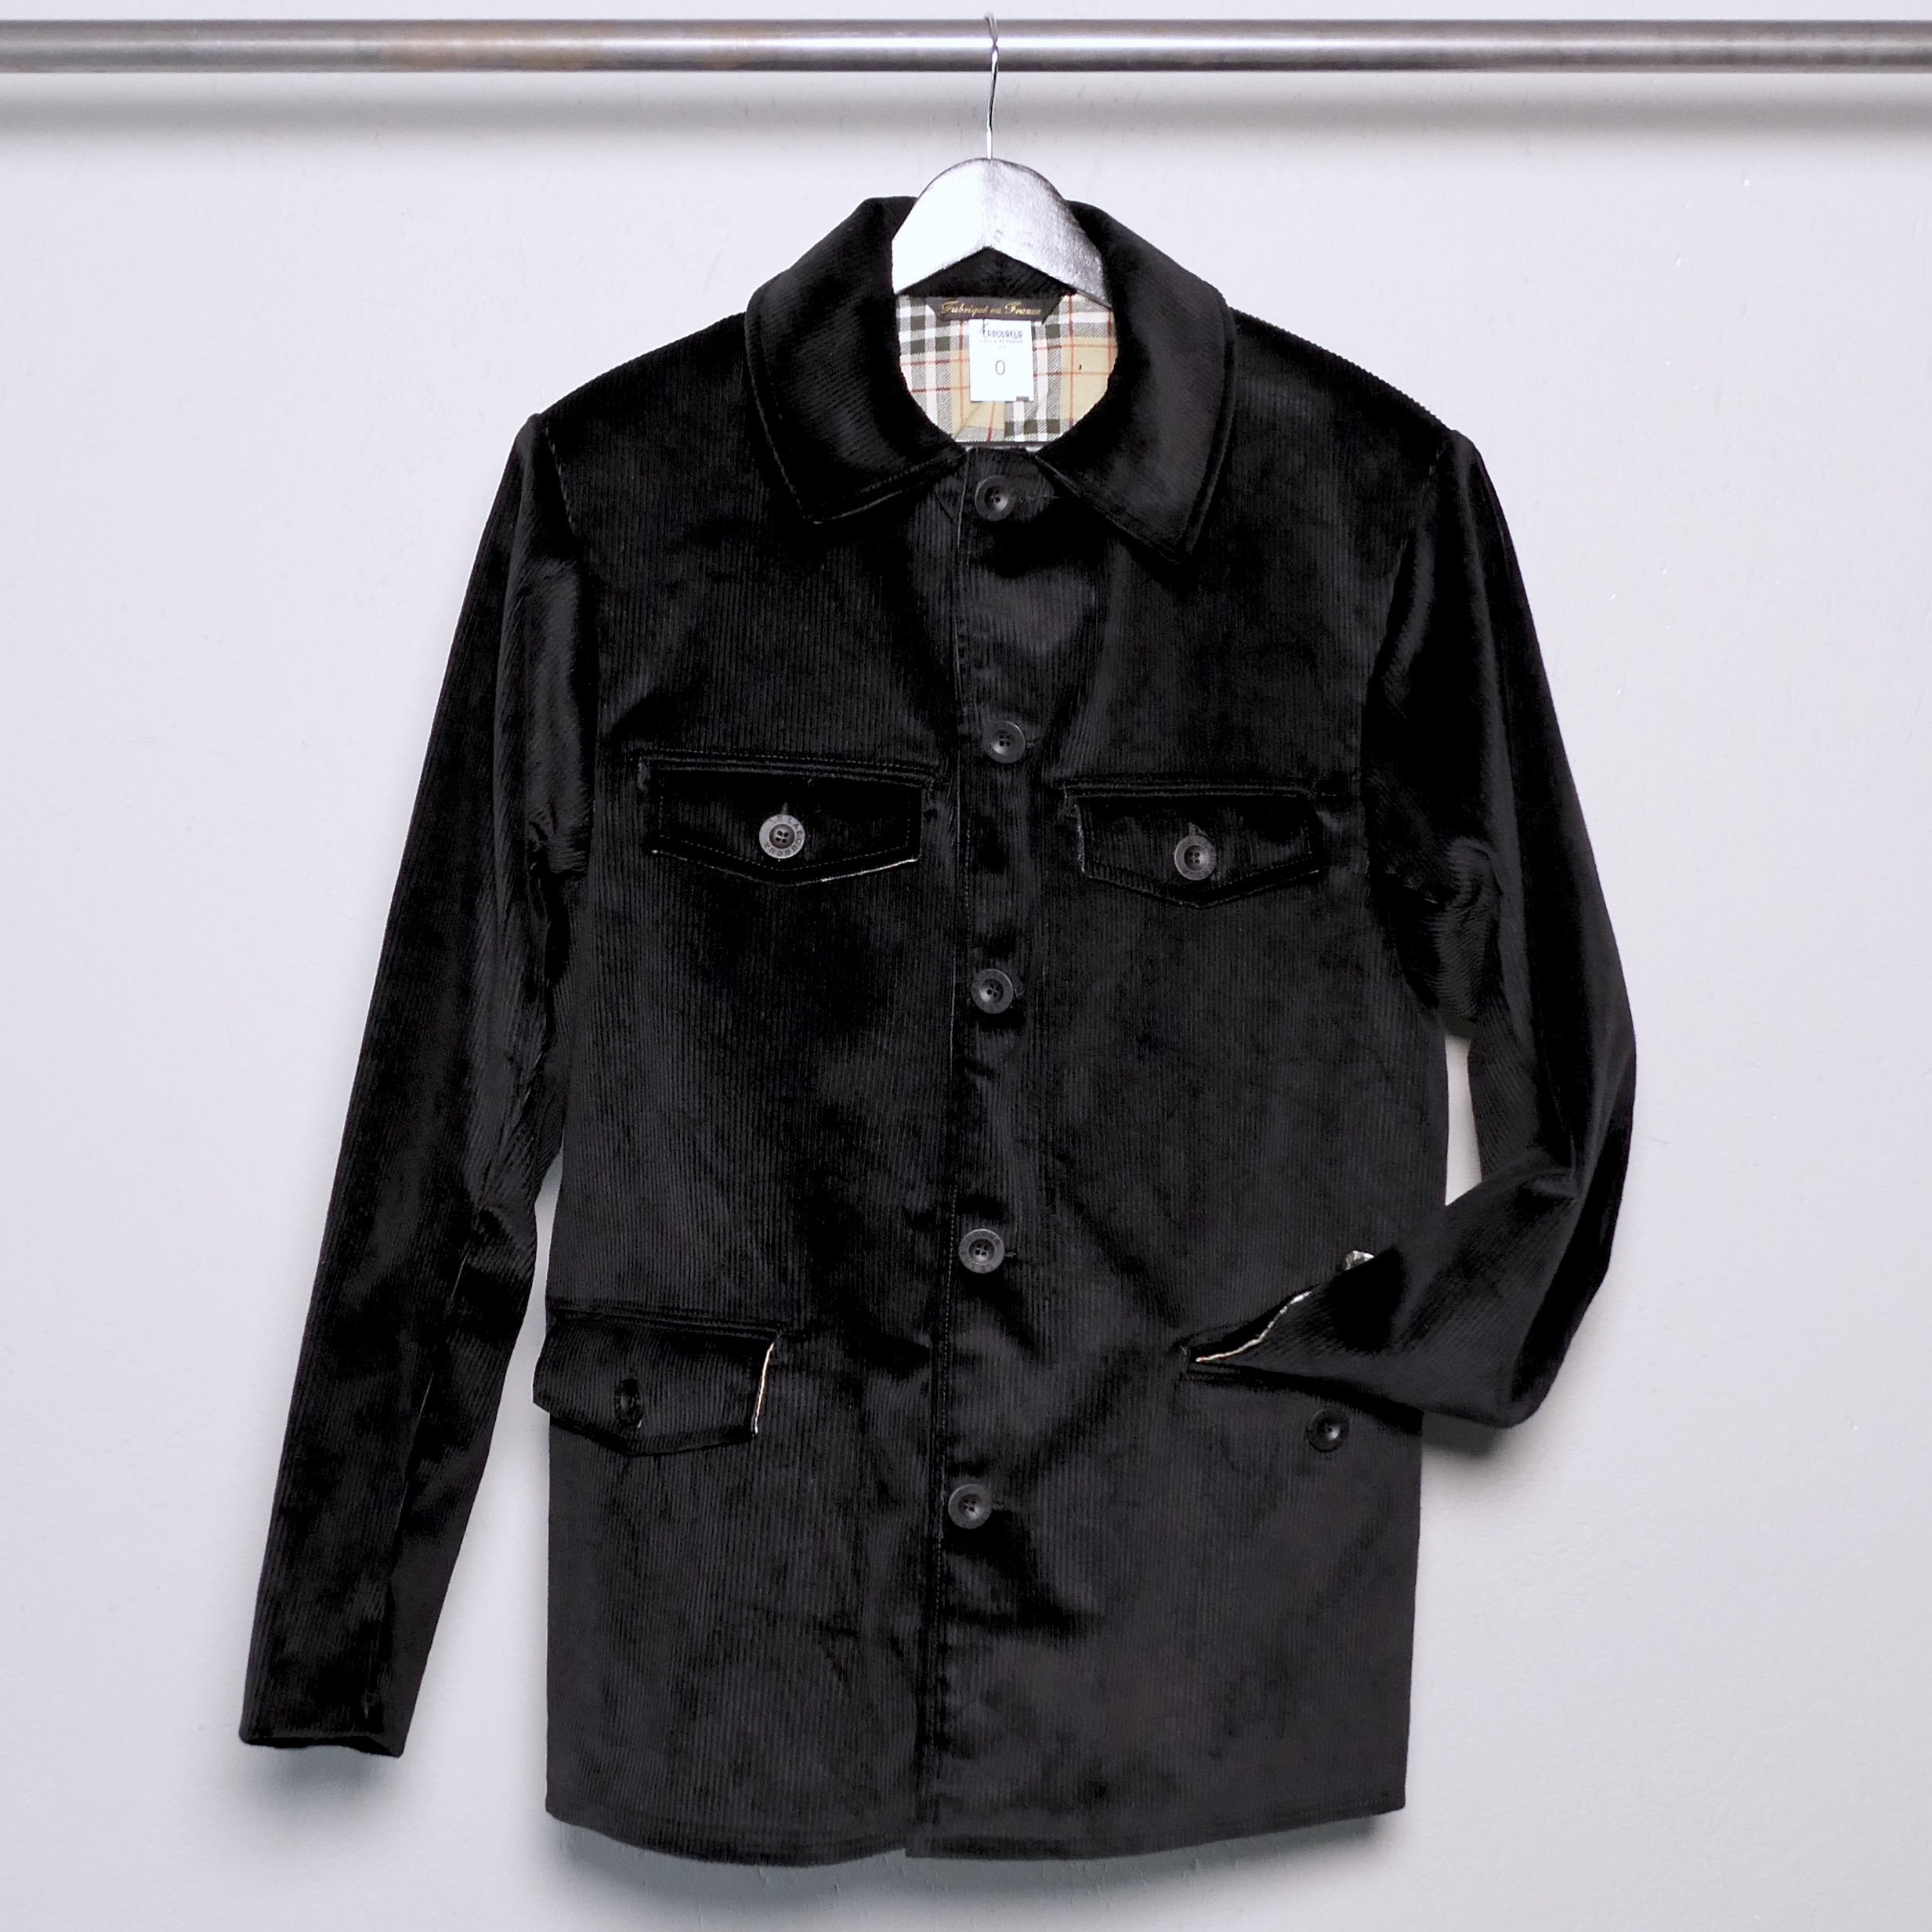 Original Craftsman's Jacket Black